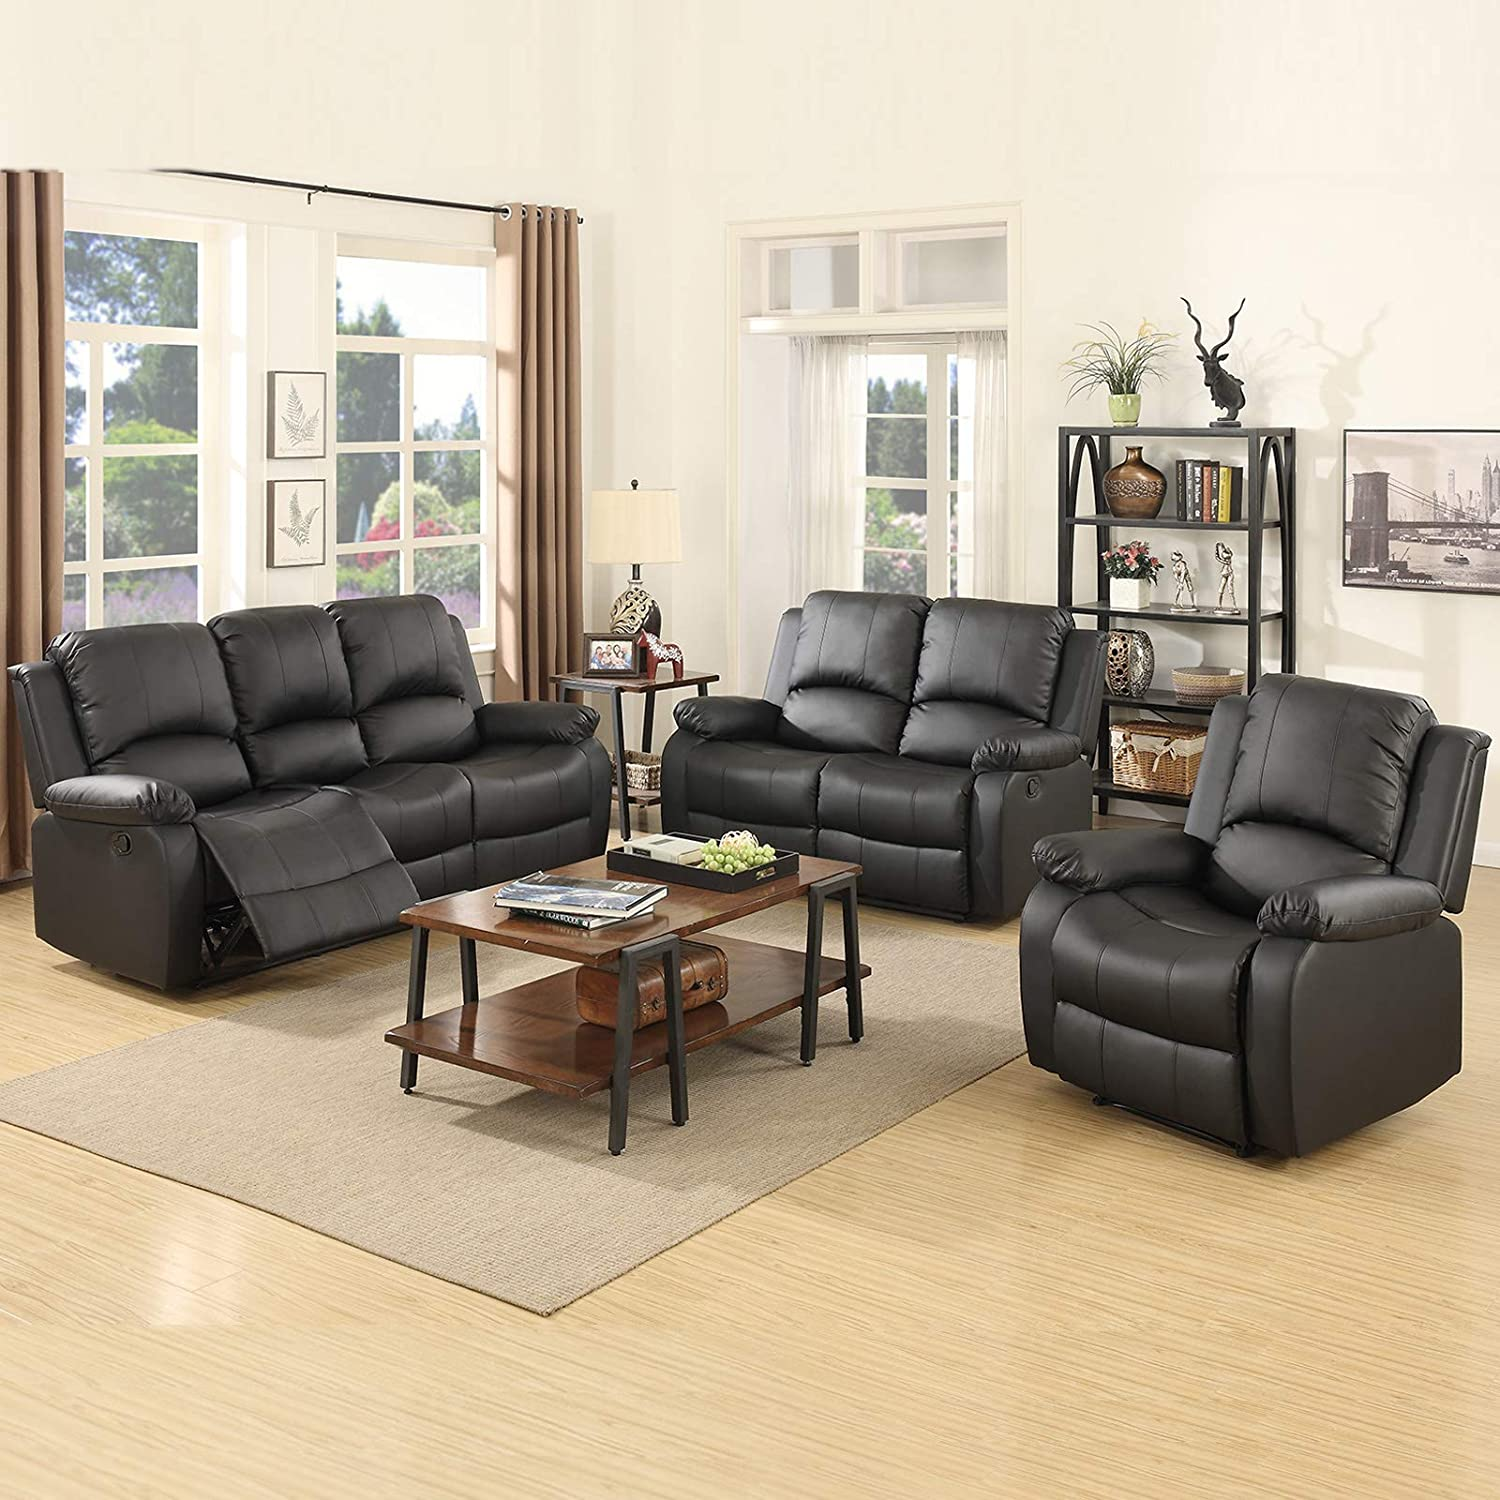 Mecor 4 Piece Sofa Set Bonded Leather Motion Sofa Reclining Sofa Chair  Living Room Furniture with 4-Seat Sofa, Loveseat and Recliner Chair,Black